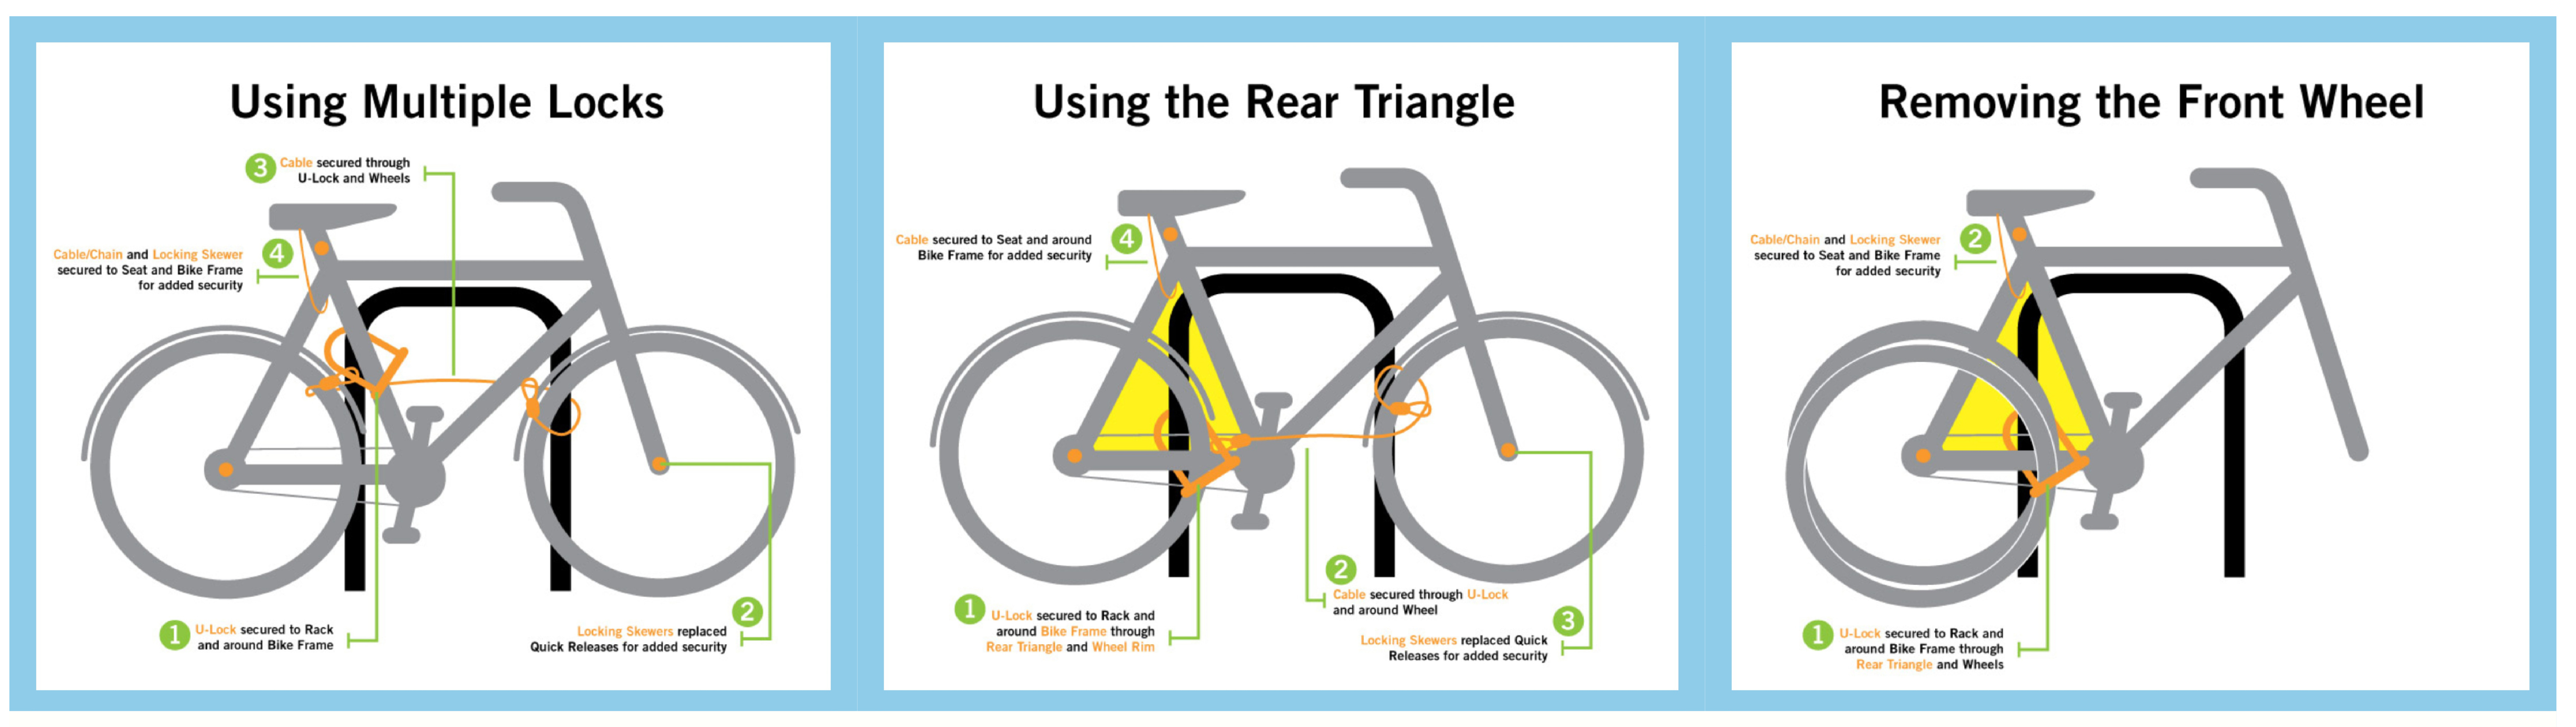 Images of Proper Bicycle Locking Techniques